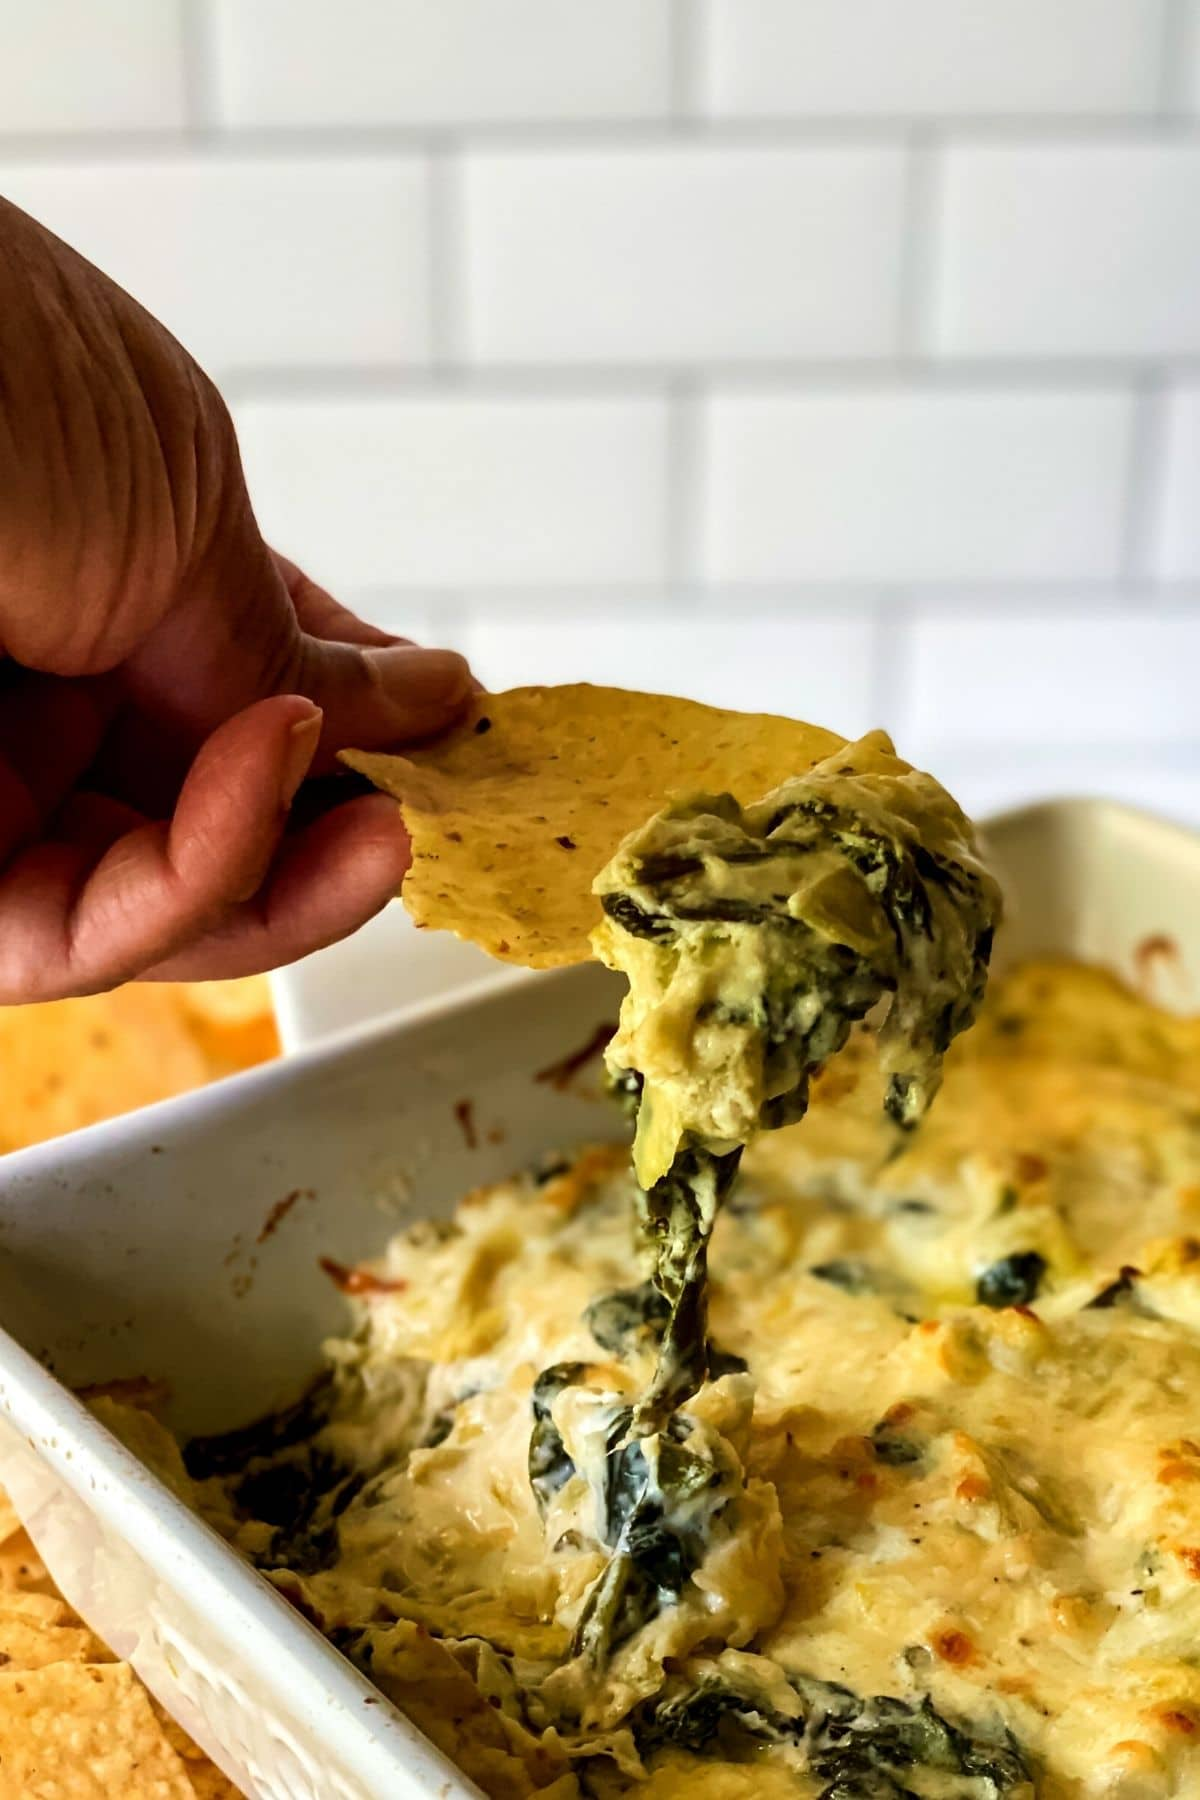 Hand holding chip with spinach dip